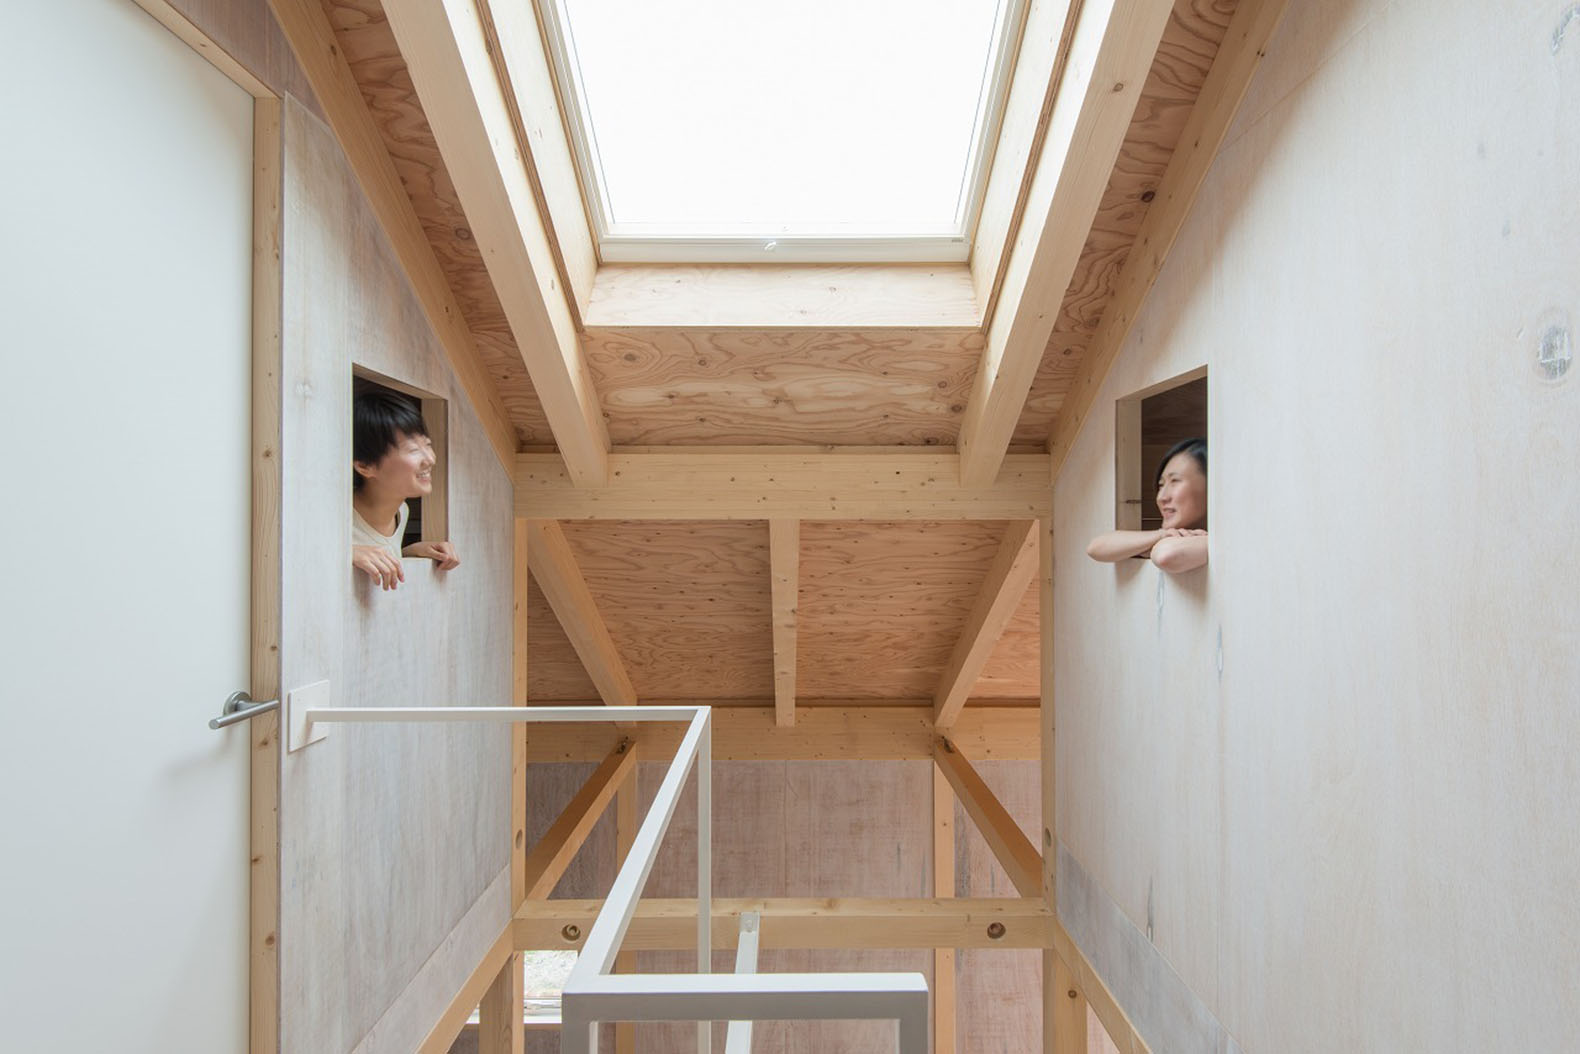 Thermal insulation inhabitat green design innovation tidy japanese home mimics the greenhouse effect to keep warm dailygadgetfo Images